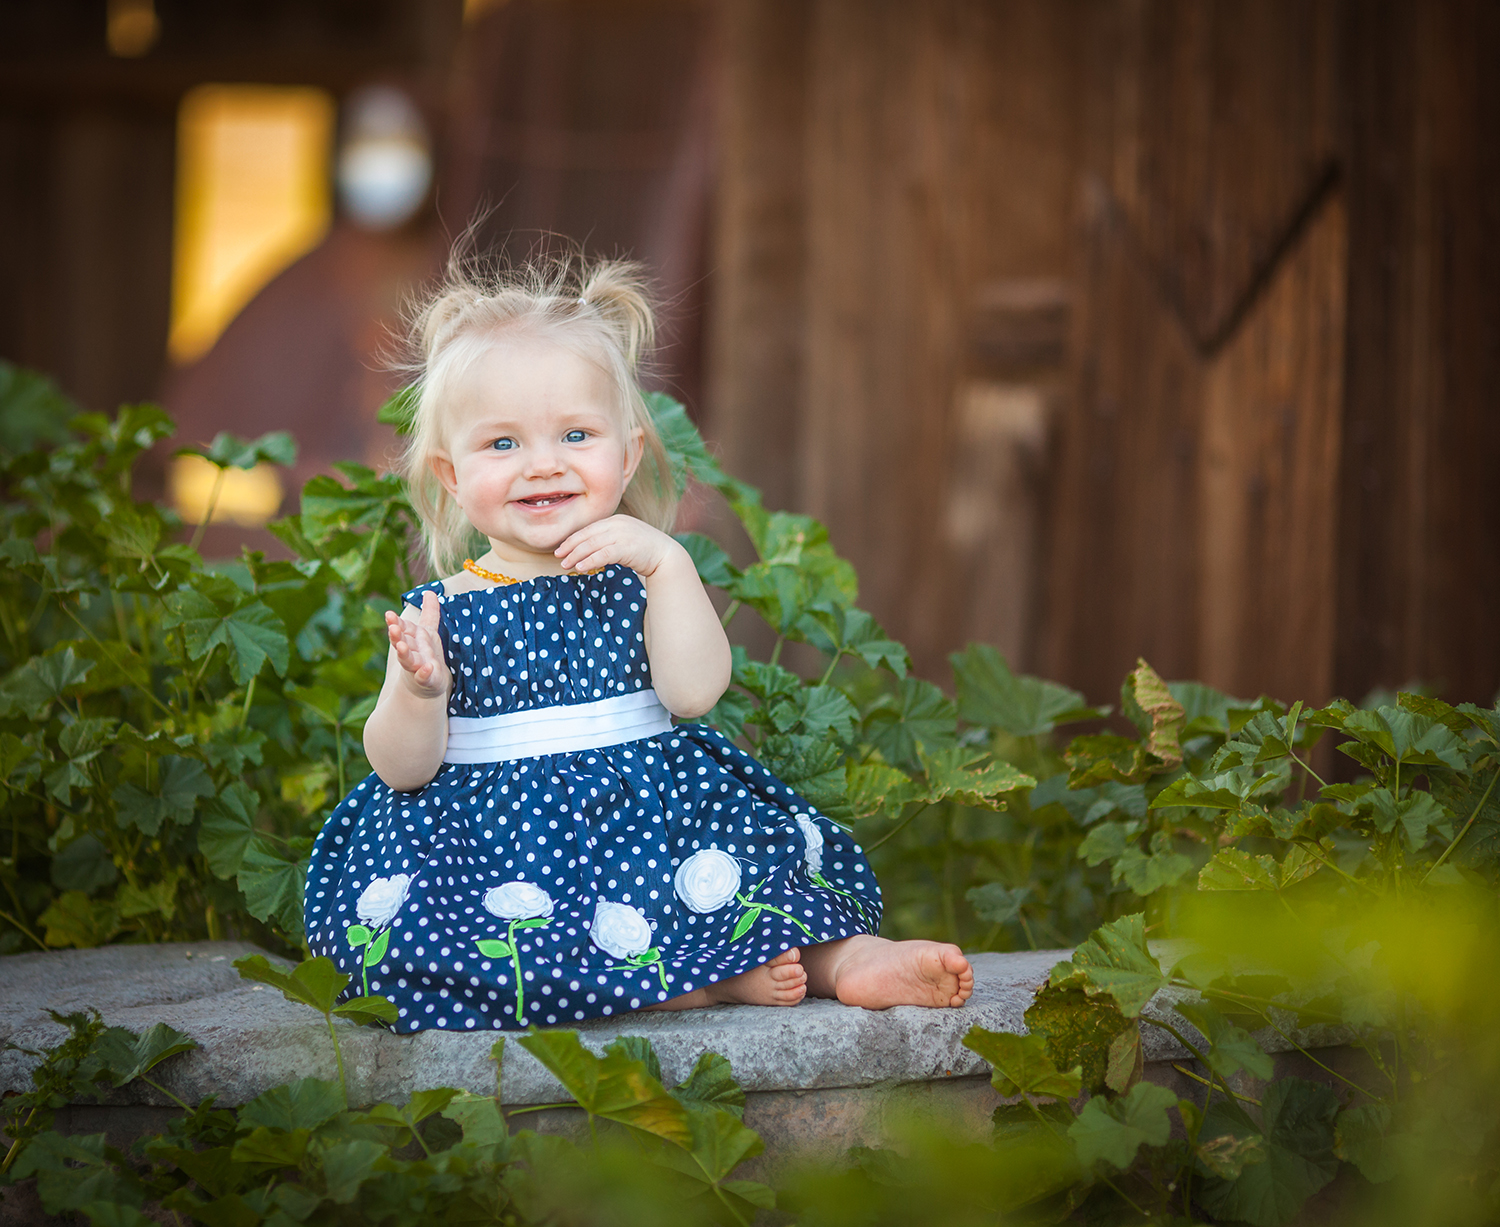 Dena_Rooney_baby photographer_0016.jpg